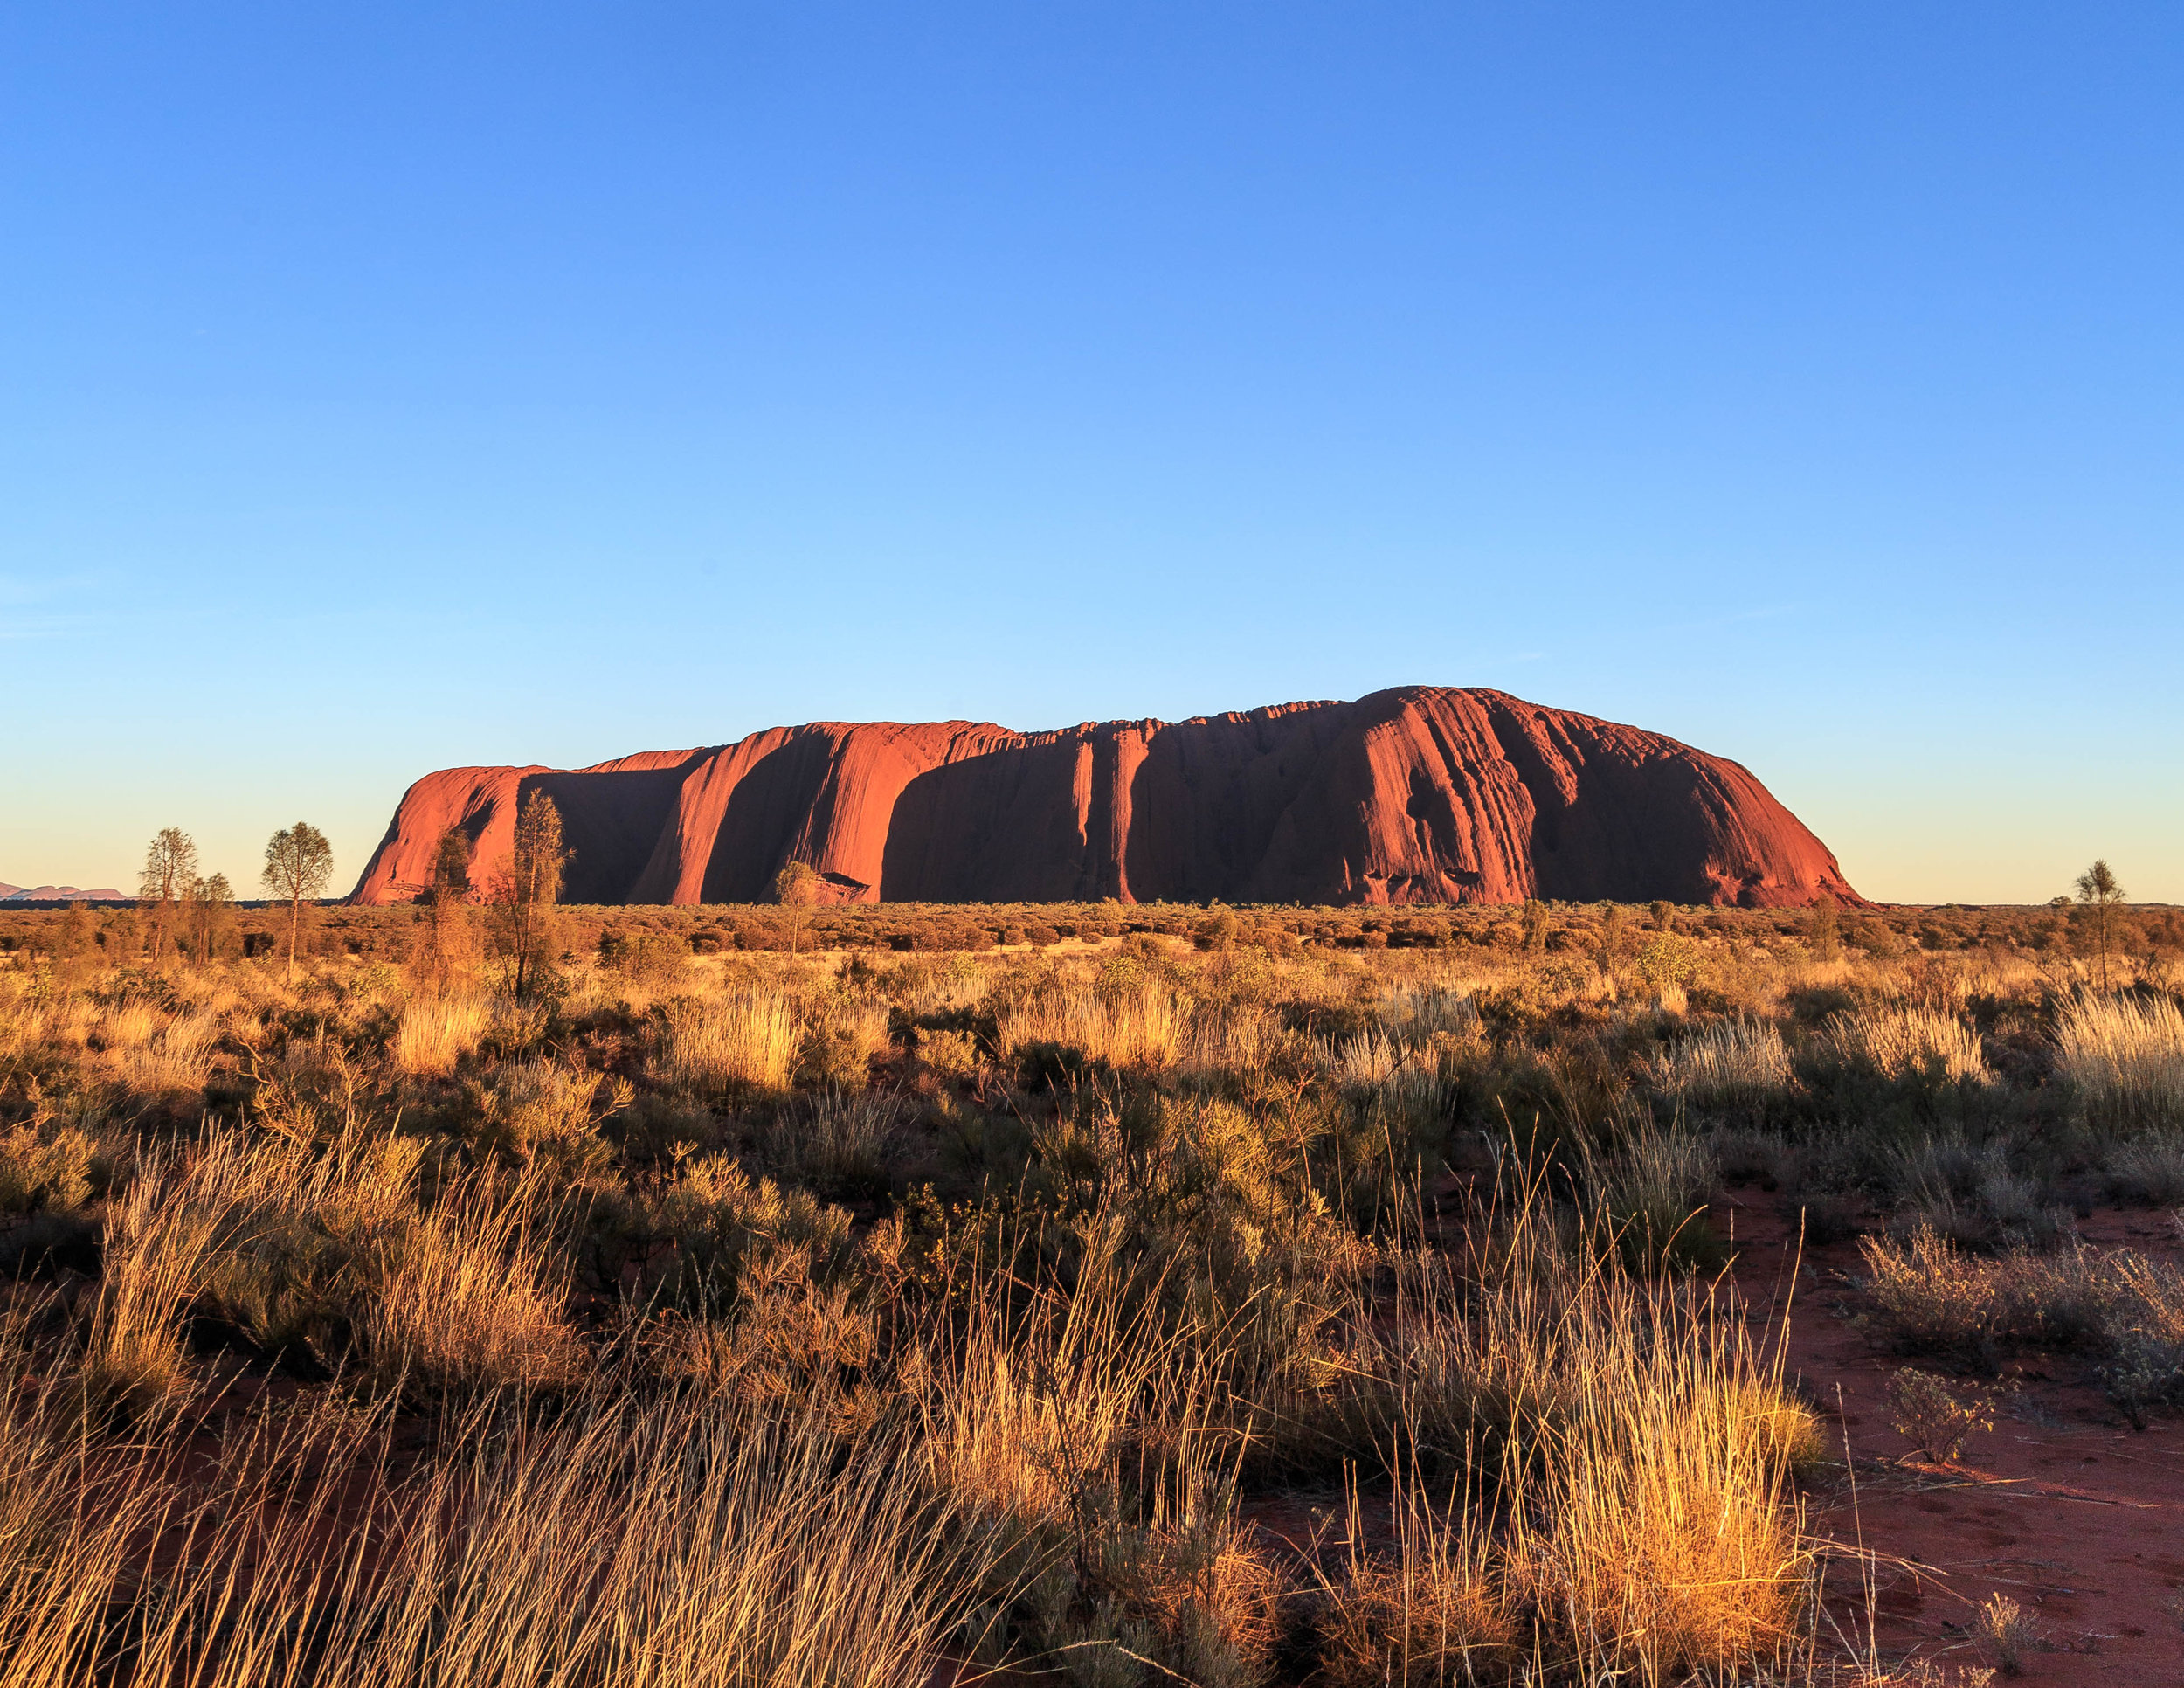 The view of Uluru from the Sunrise viewing platform